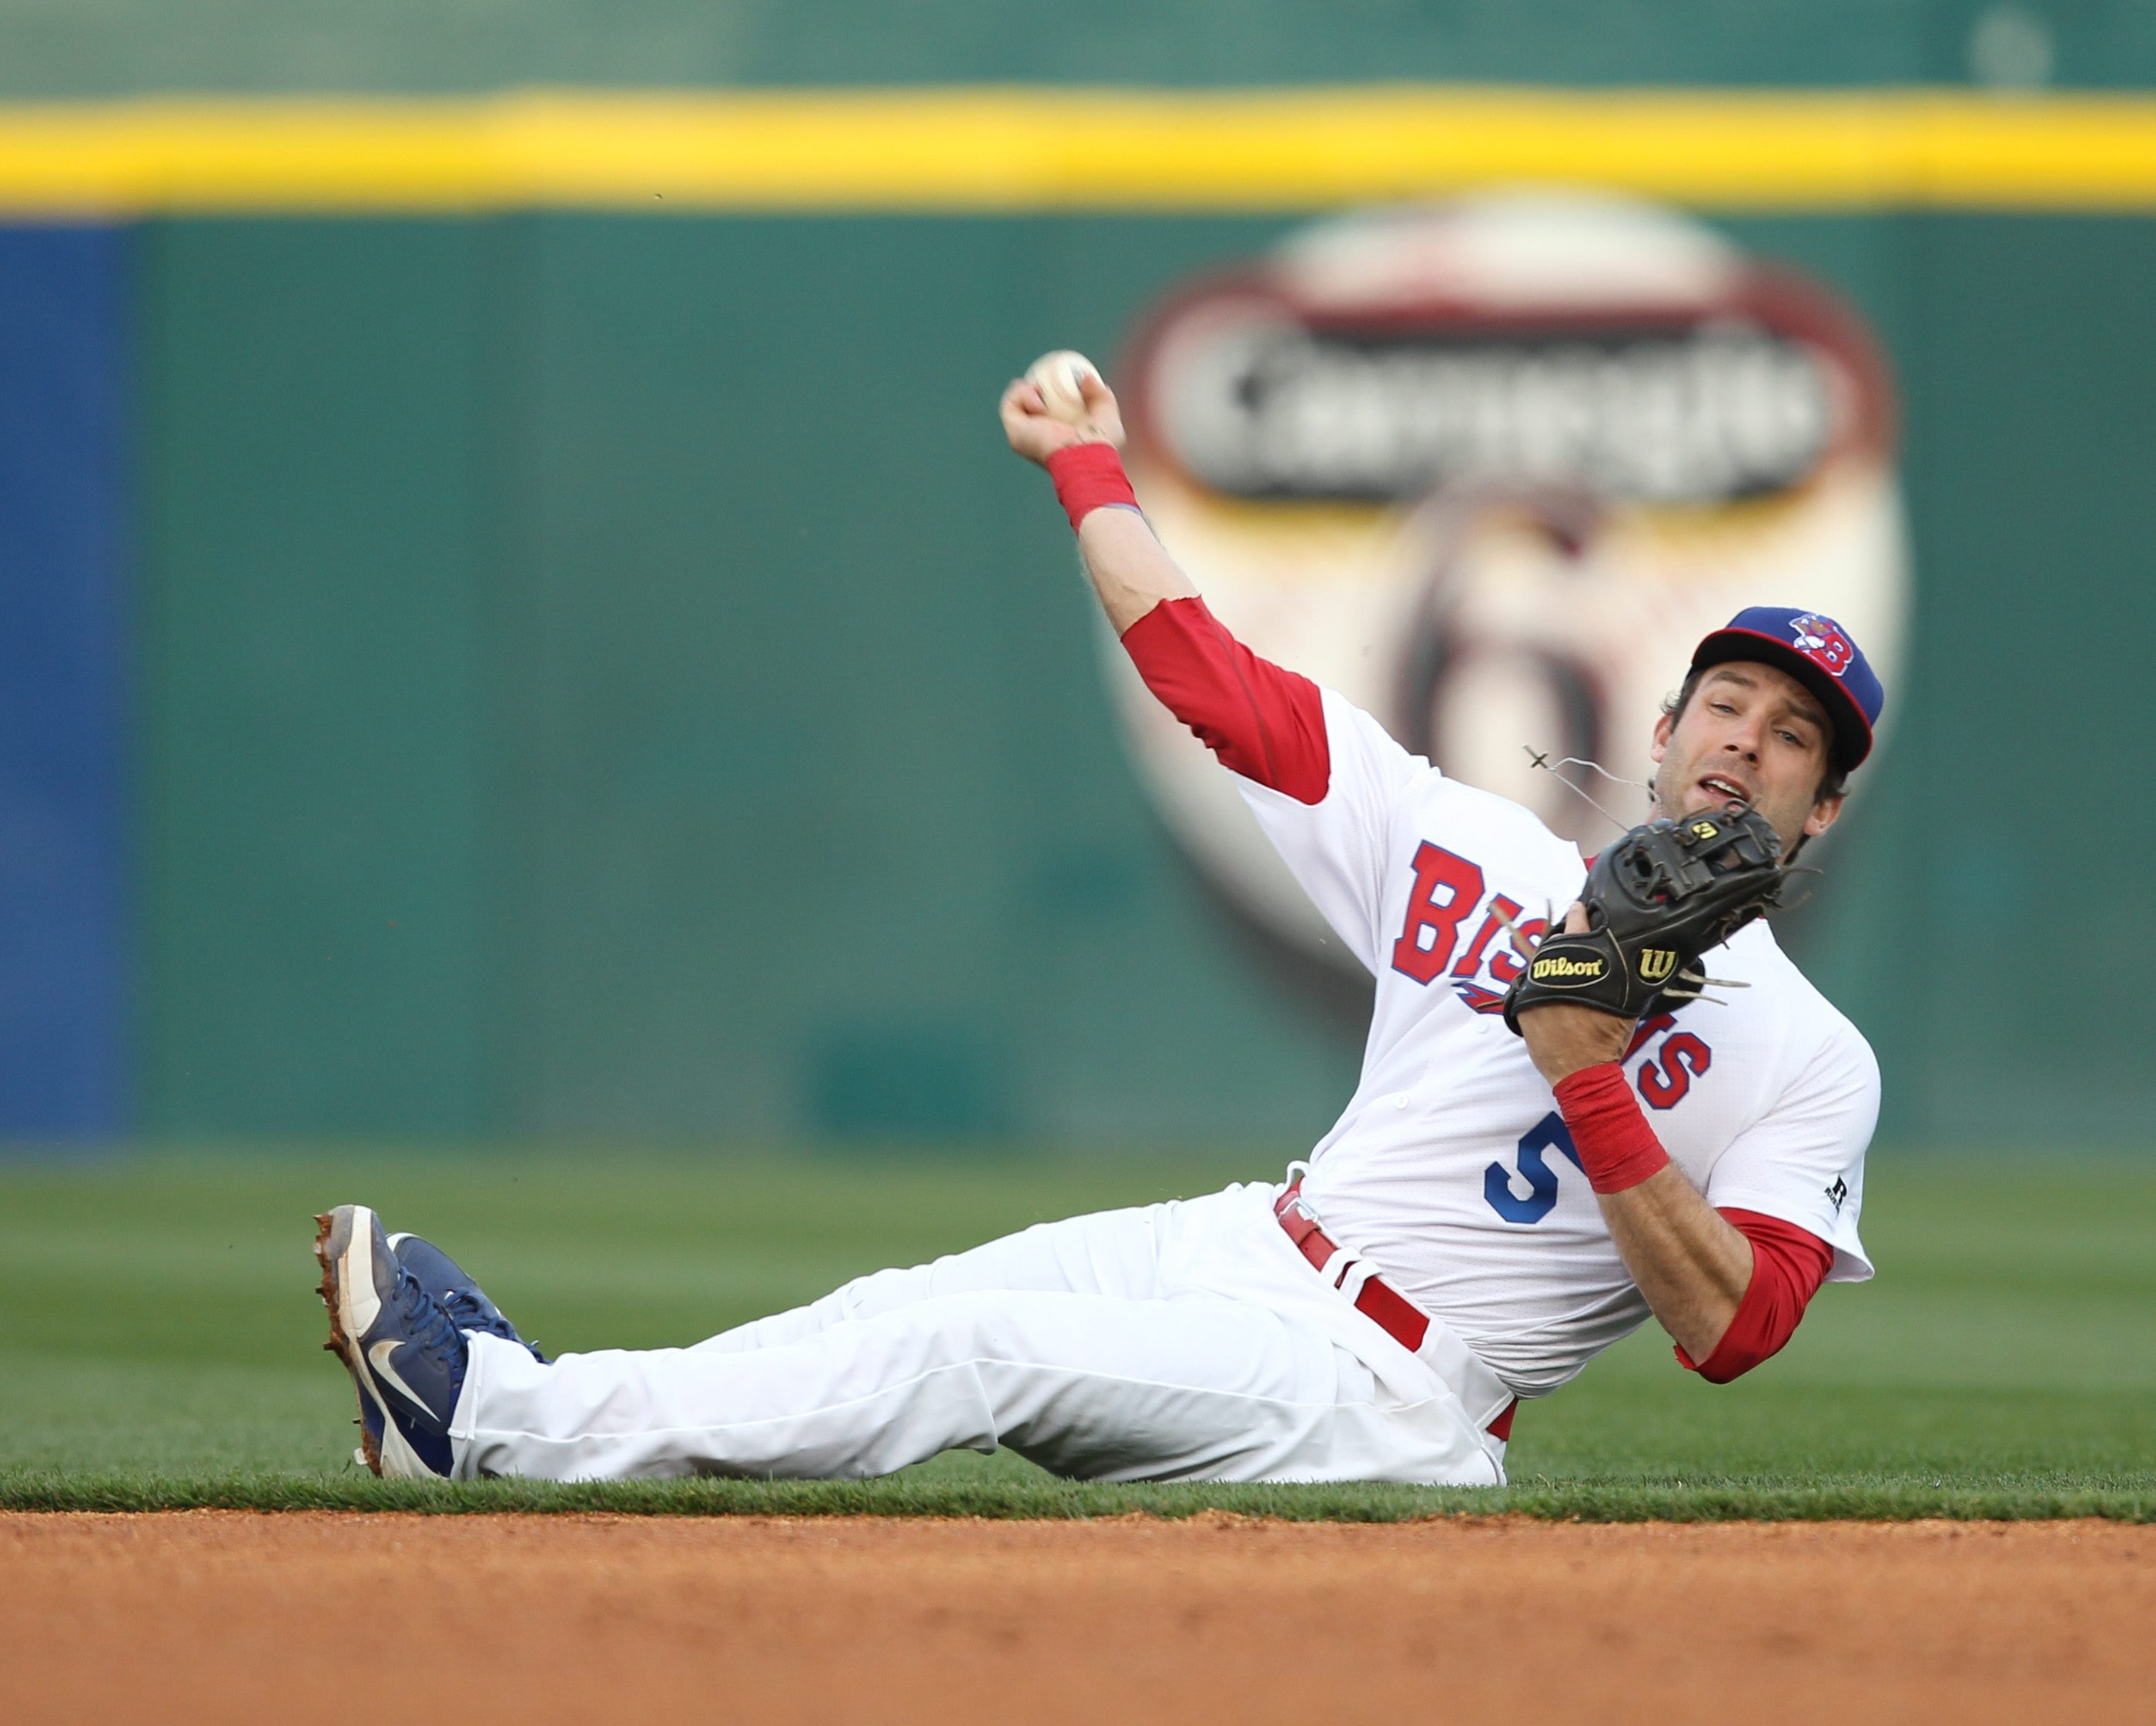 Bisons second baseman Jim Negrych makes a diving stop.